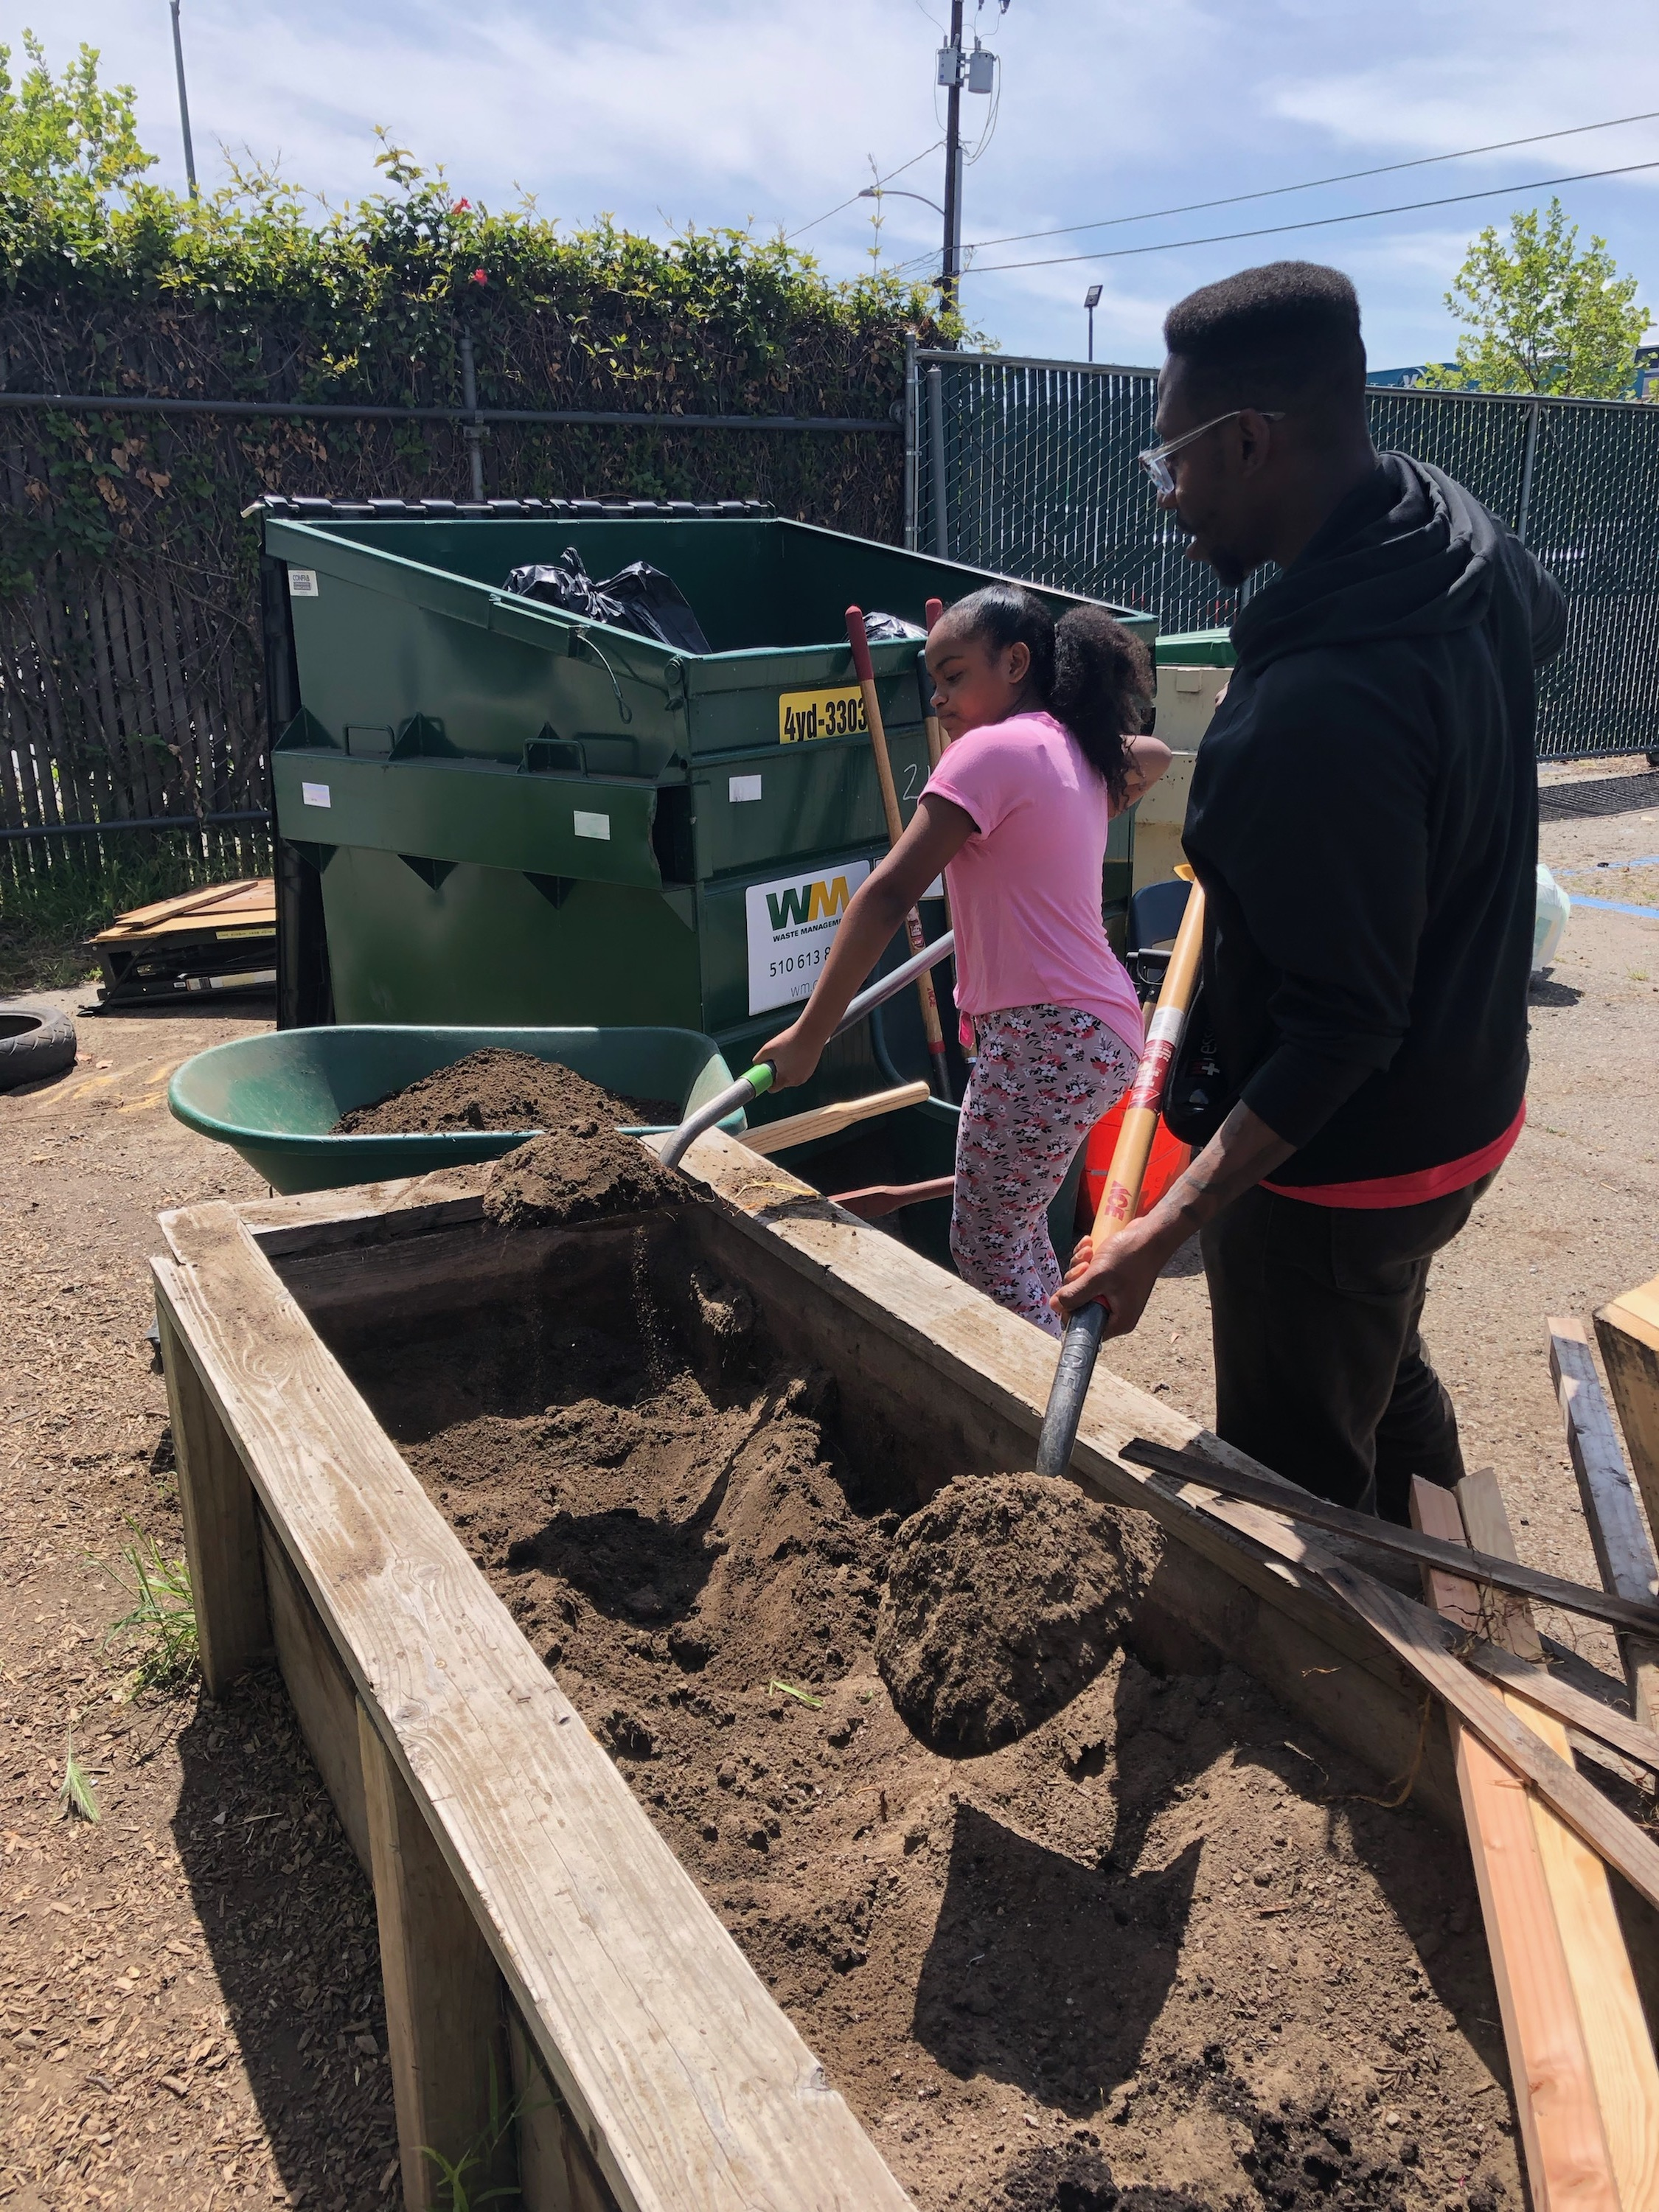 Staff member Malcolm, pictured to the right, assists a student shoveling new fertilizer into the planters-box.